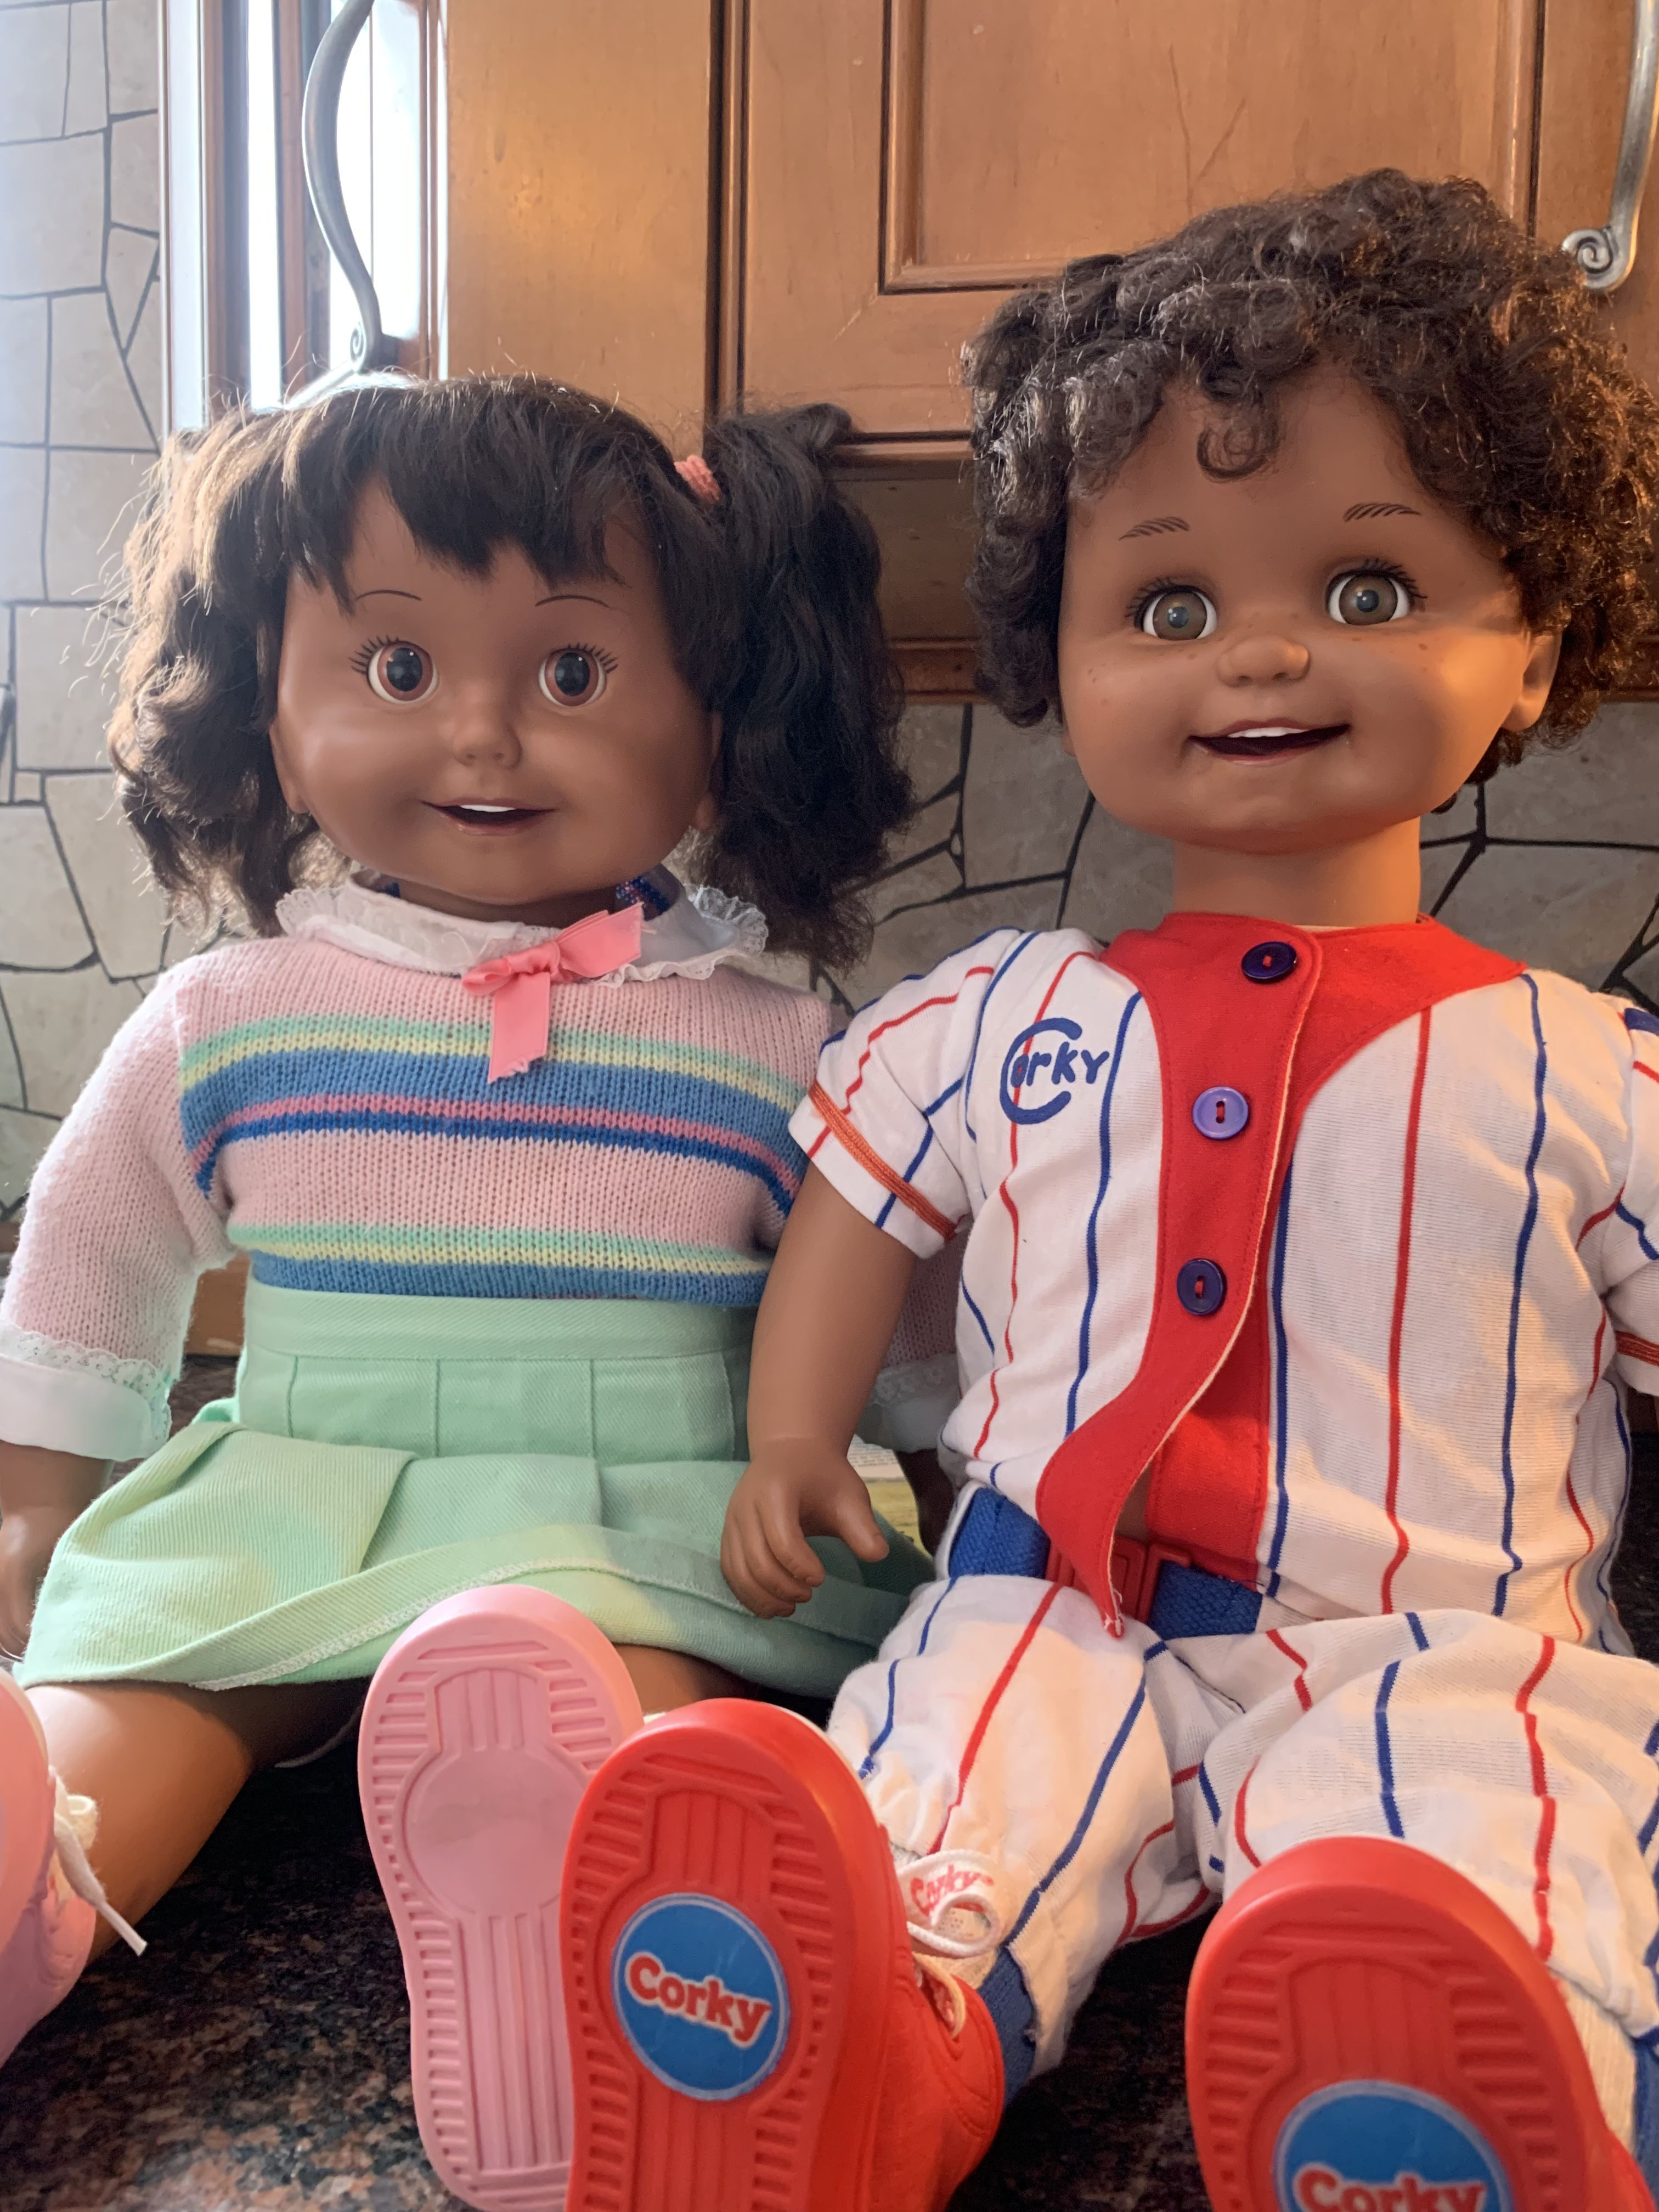 Pin On Playmates Cricket And Corky Vintage Dolls